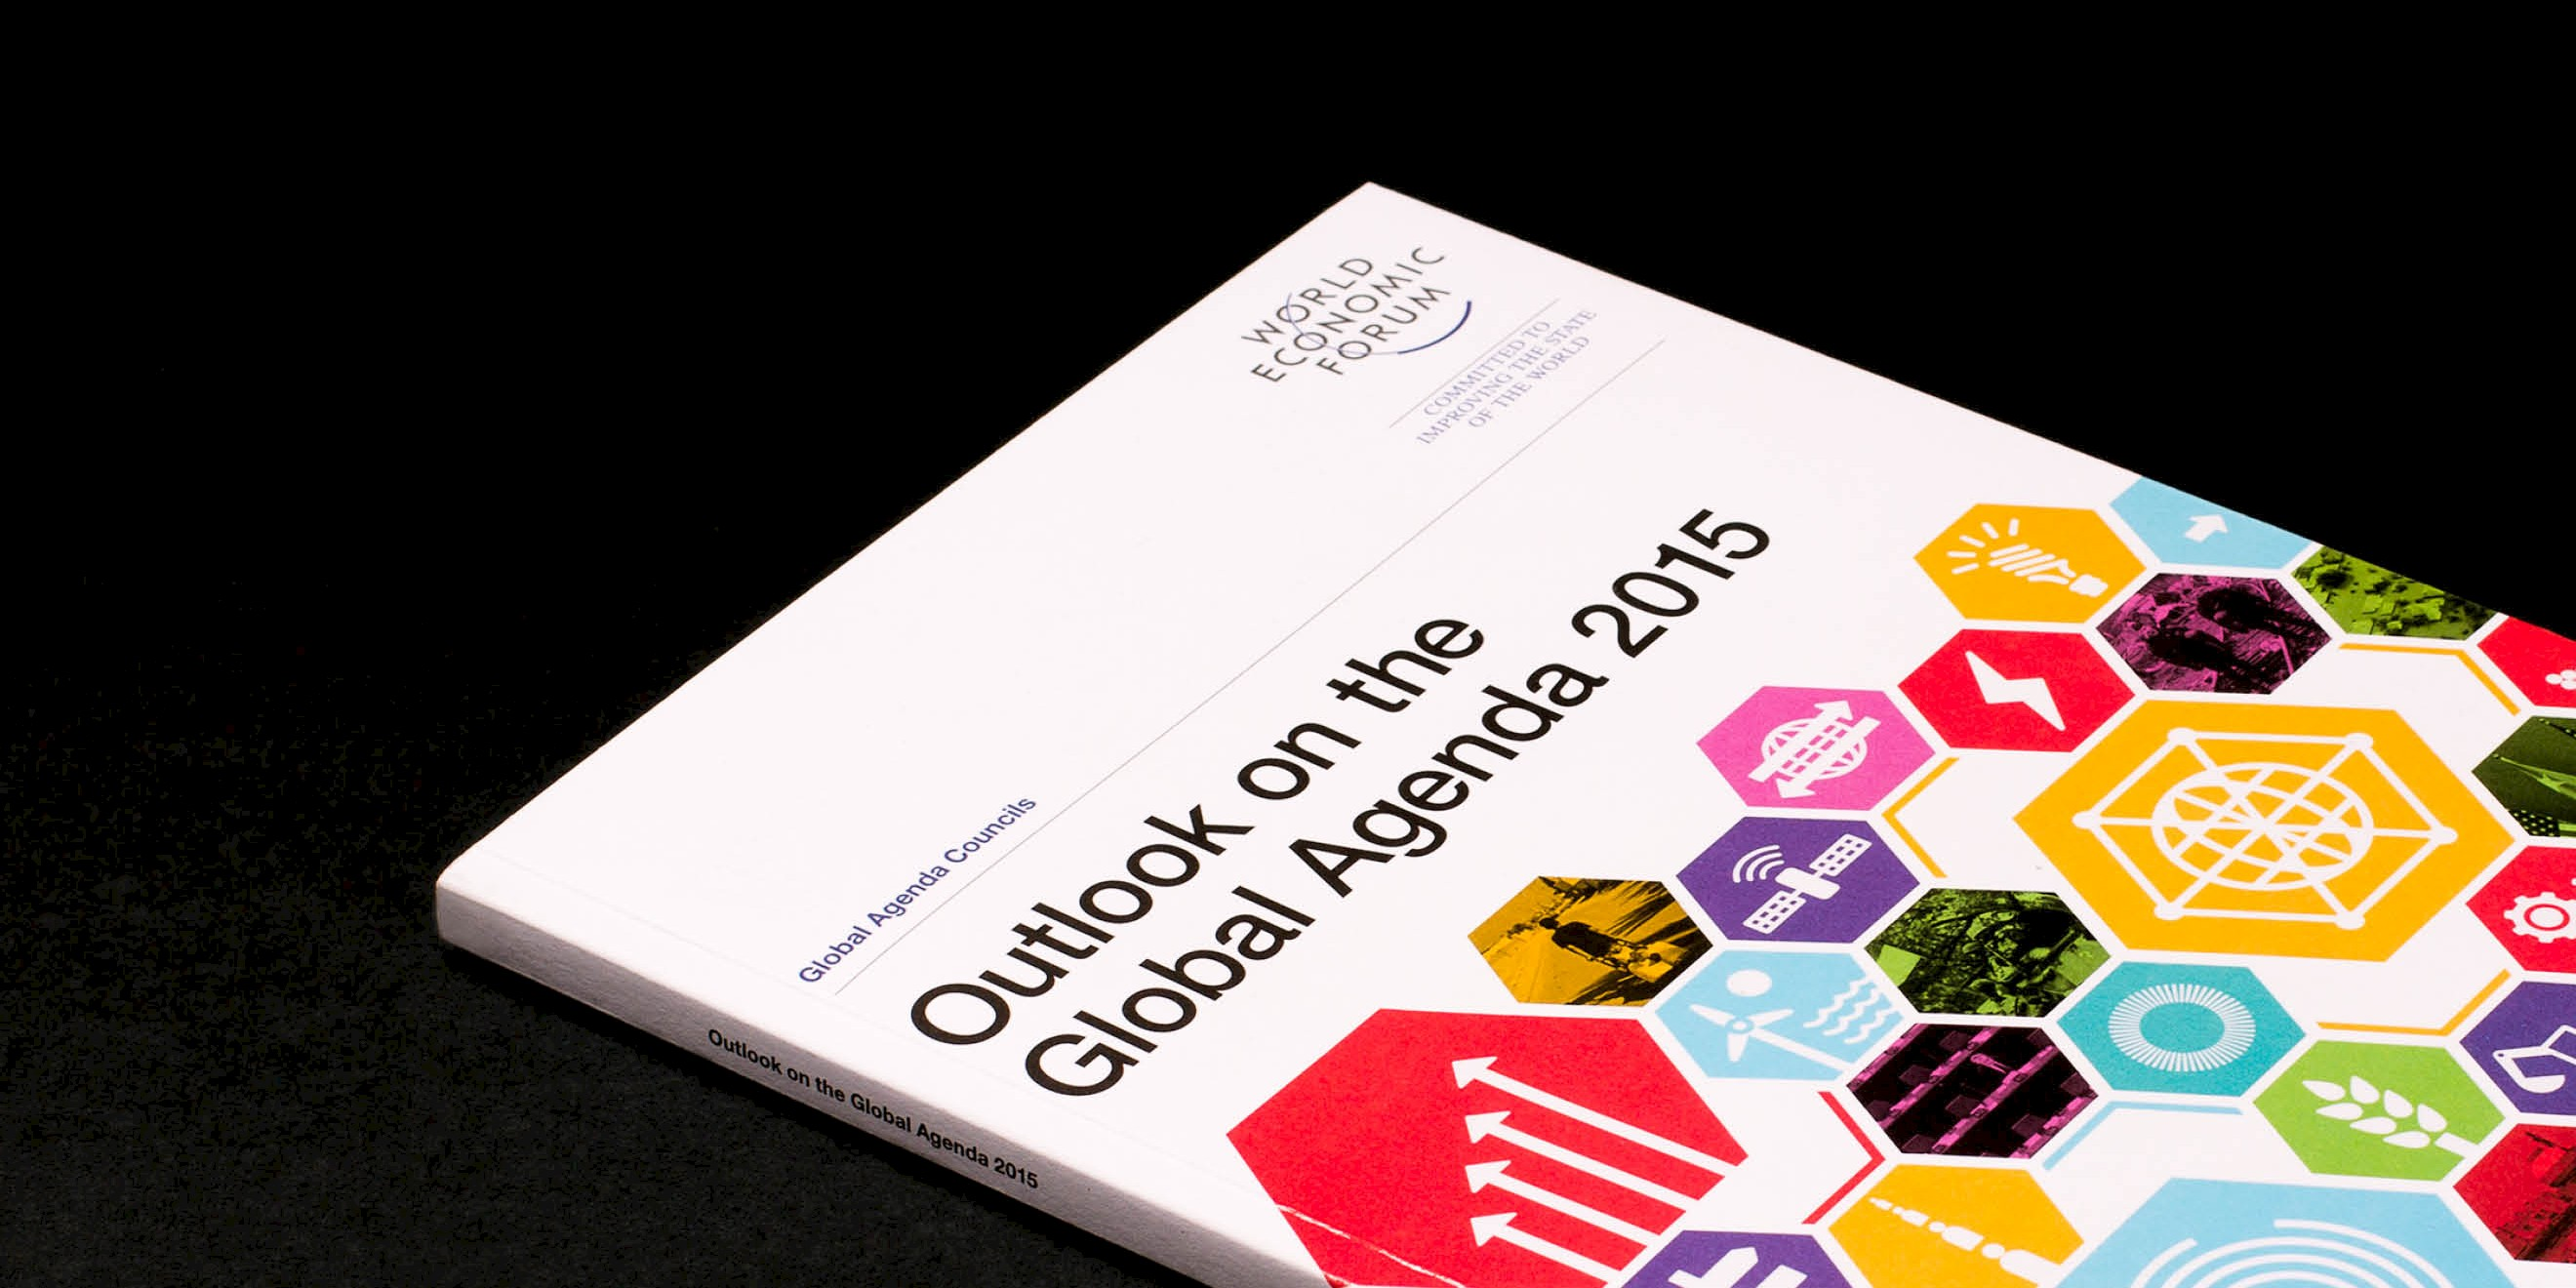 World Economic Forum: Outlook on the Global Agenda 2015 report by Human After All